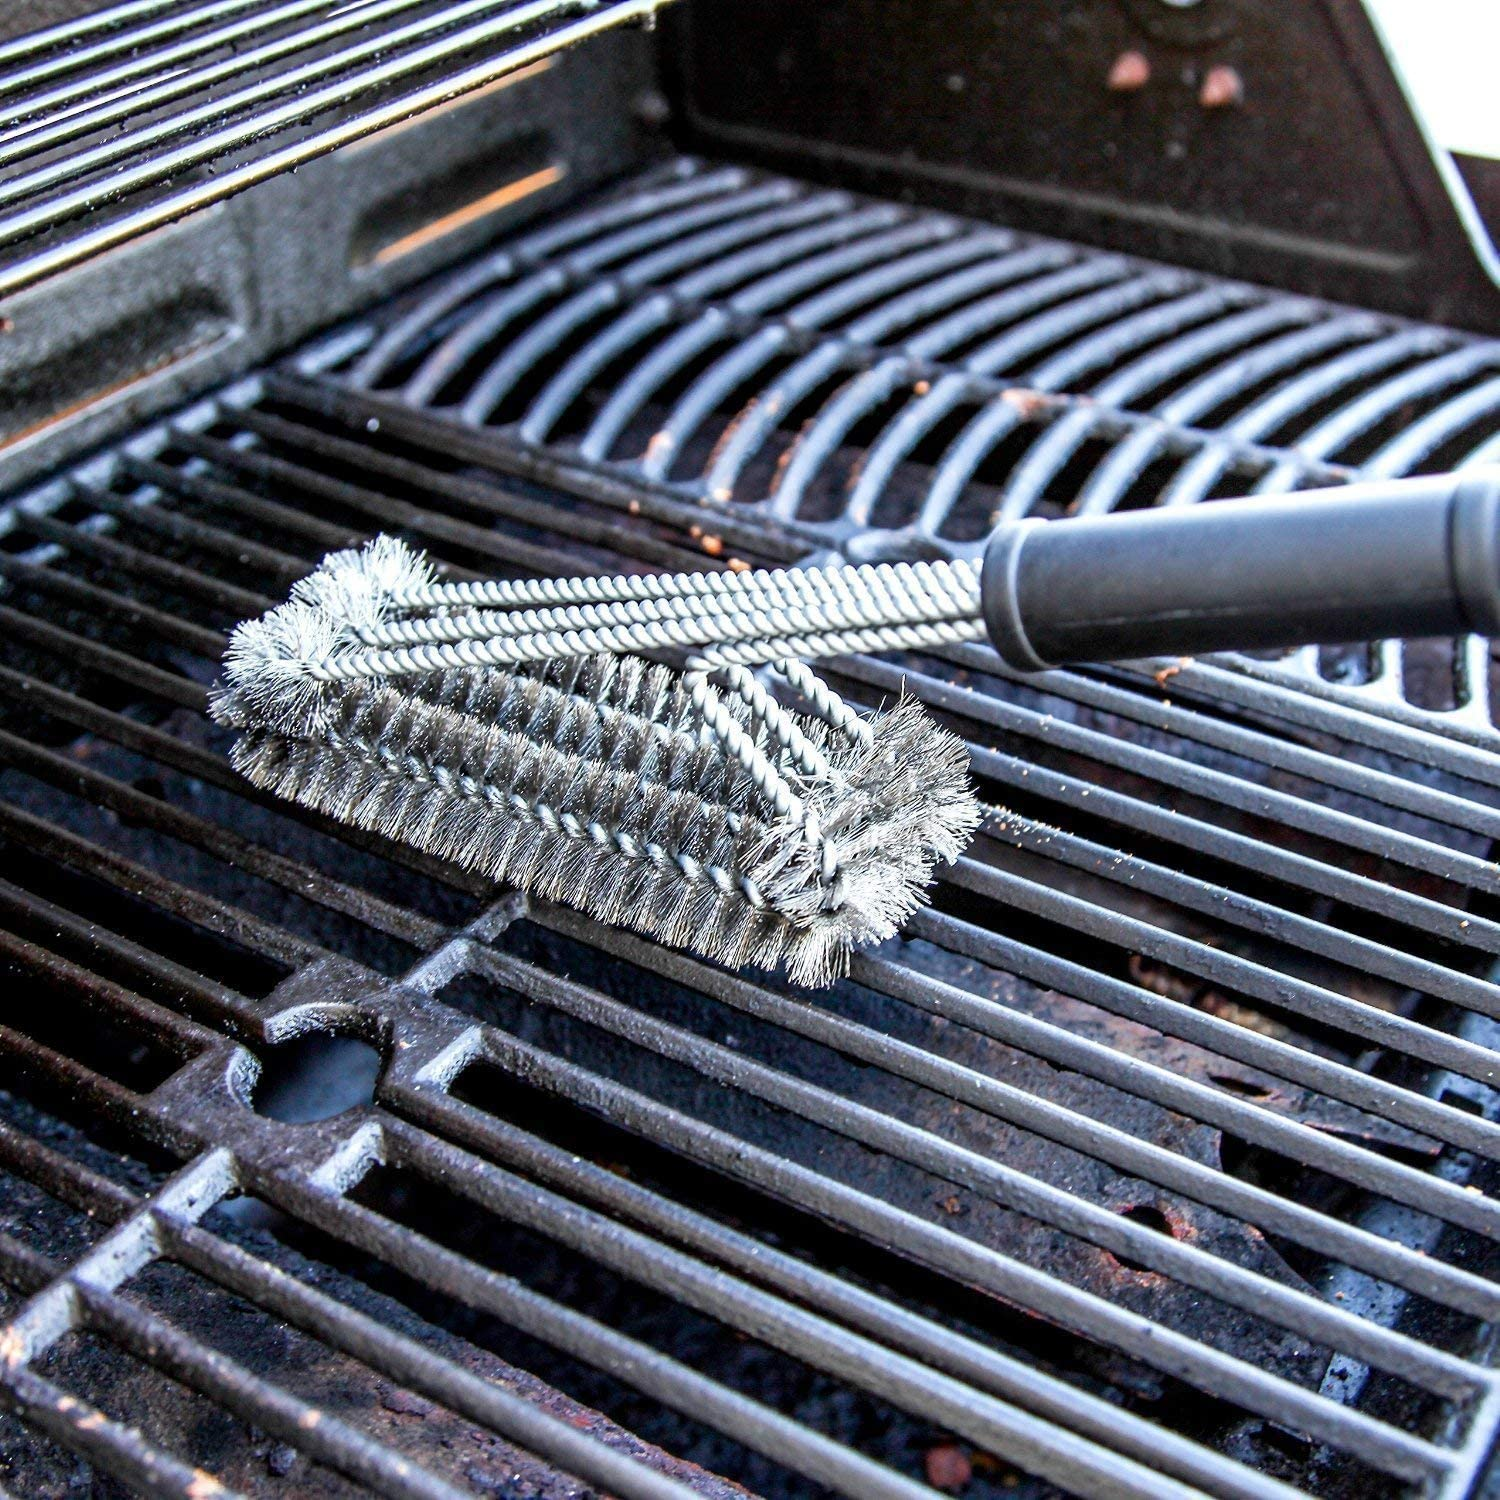 Cleaning up the grill grates